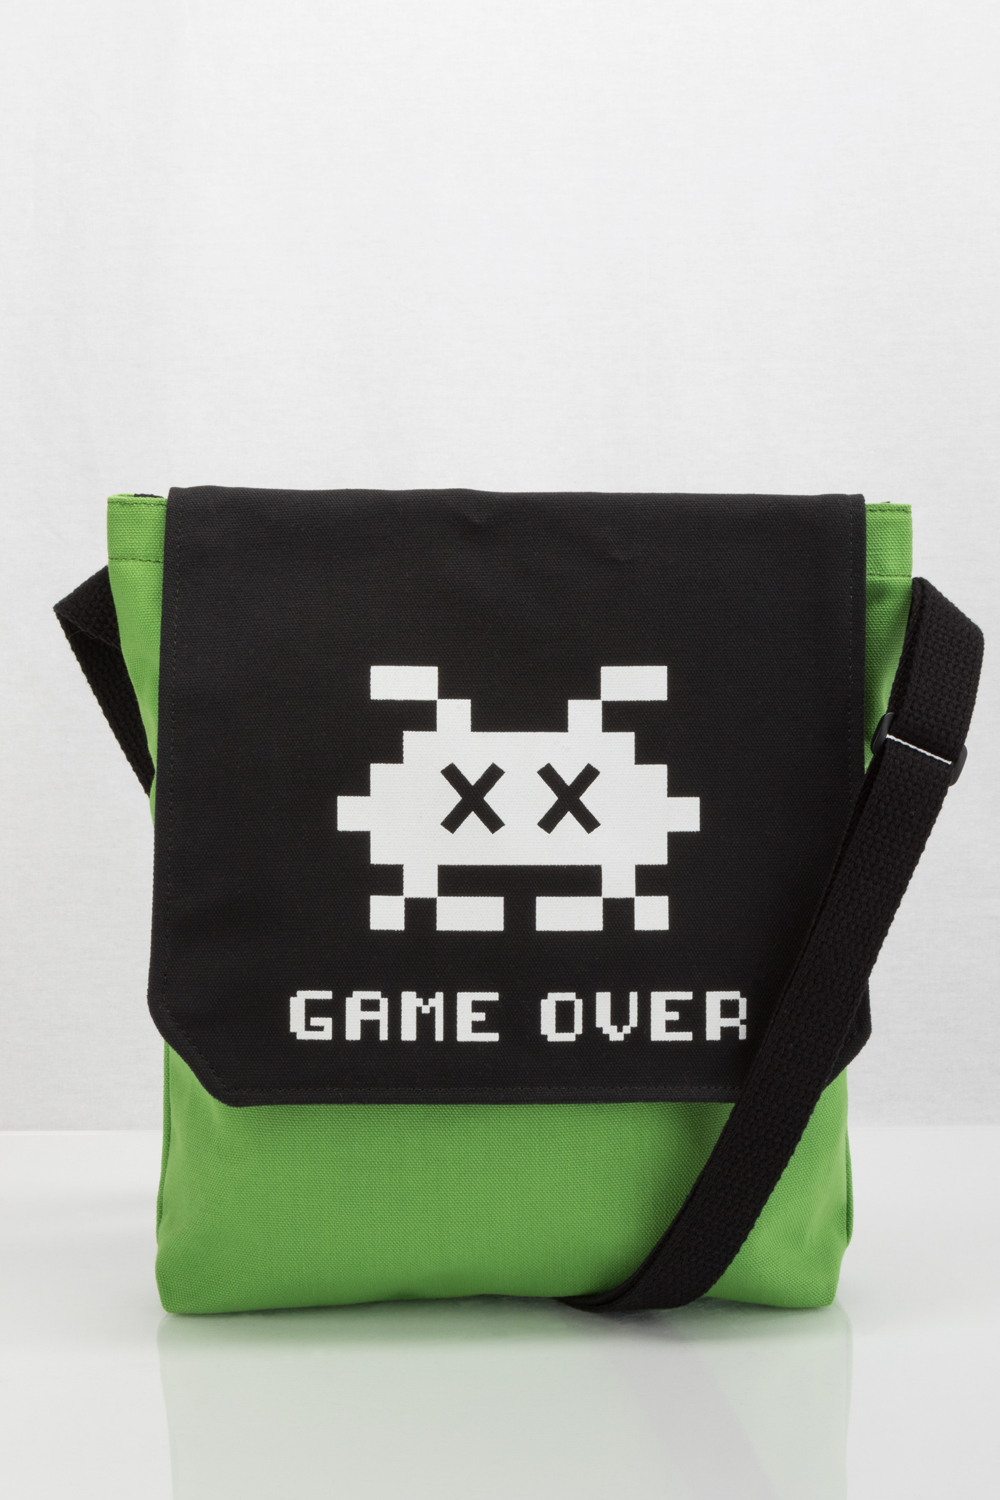 ZHD_Satchel_GameOver022-1.jpg